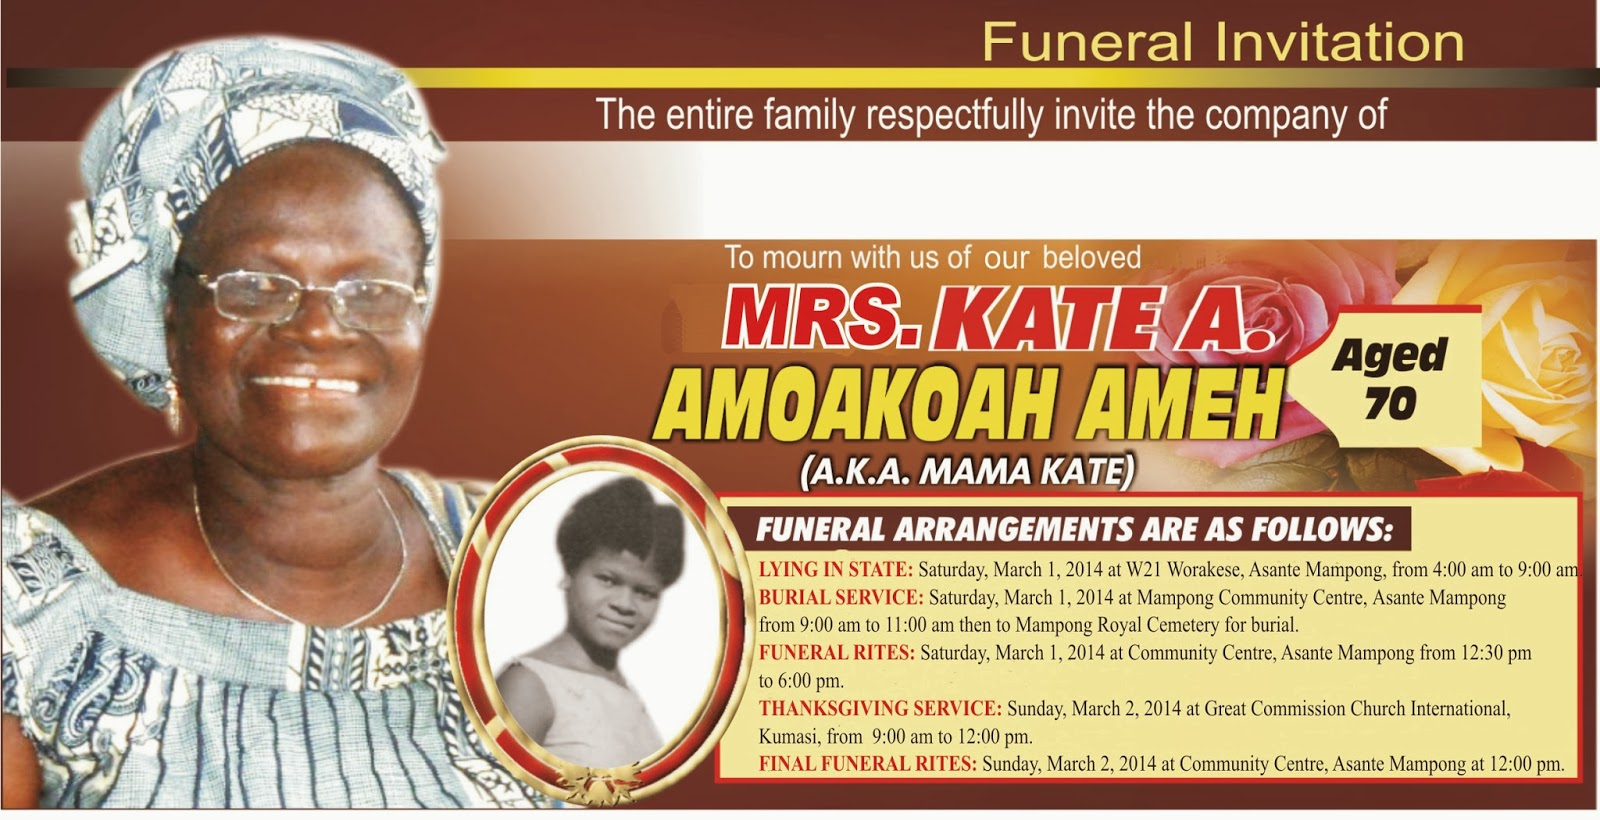 funeral invitation cards – Funeral Invitation Card